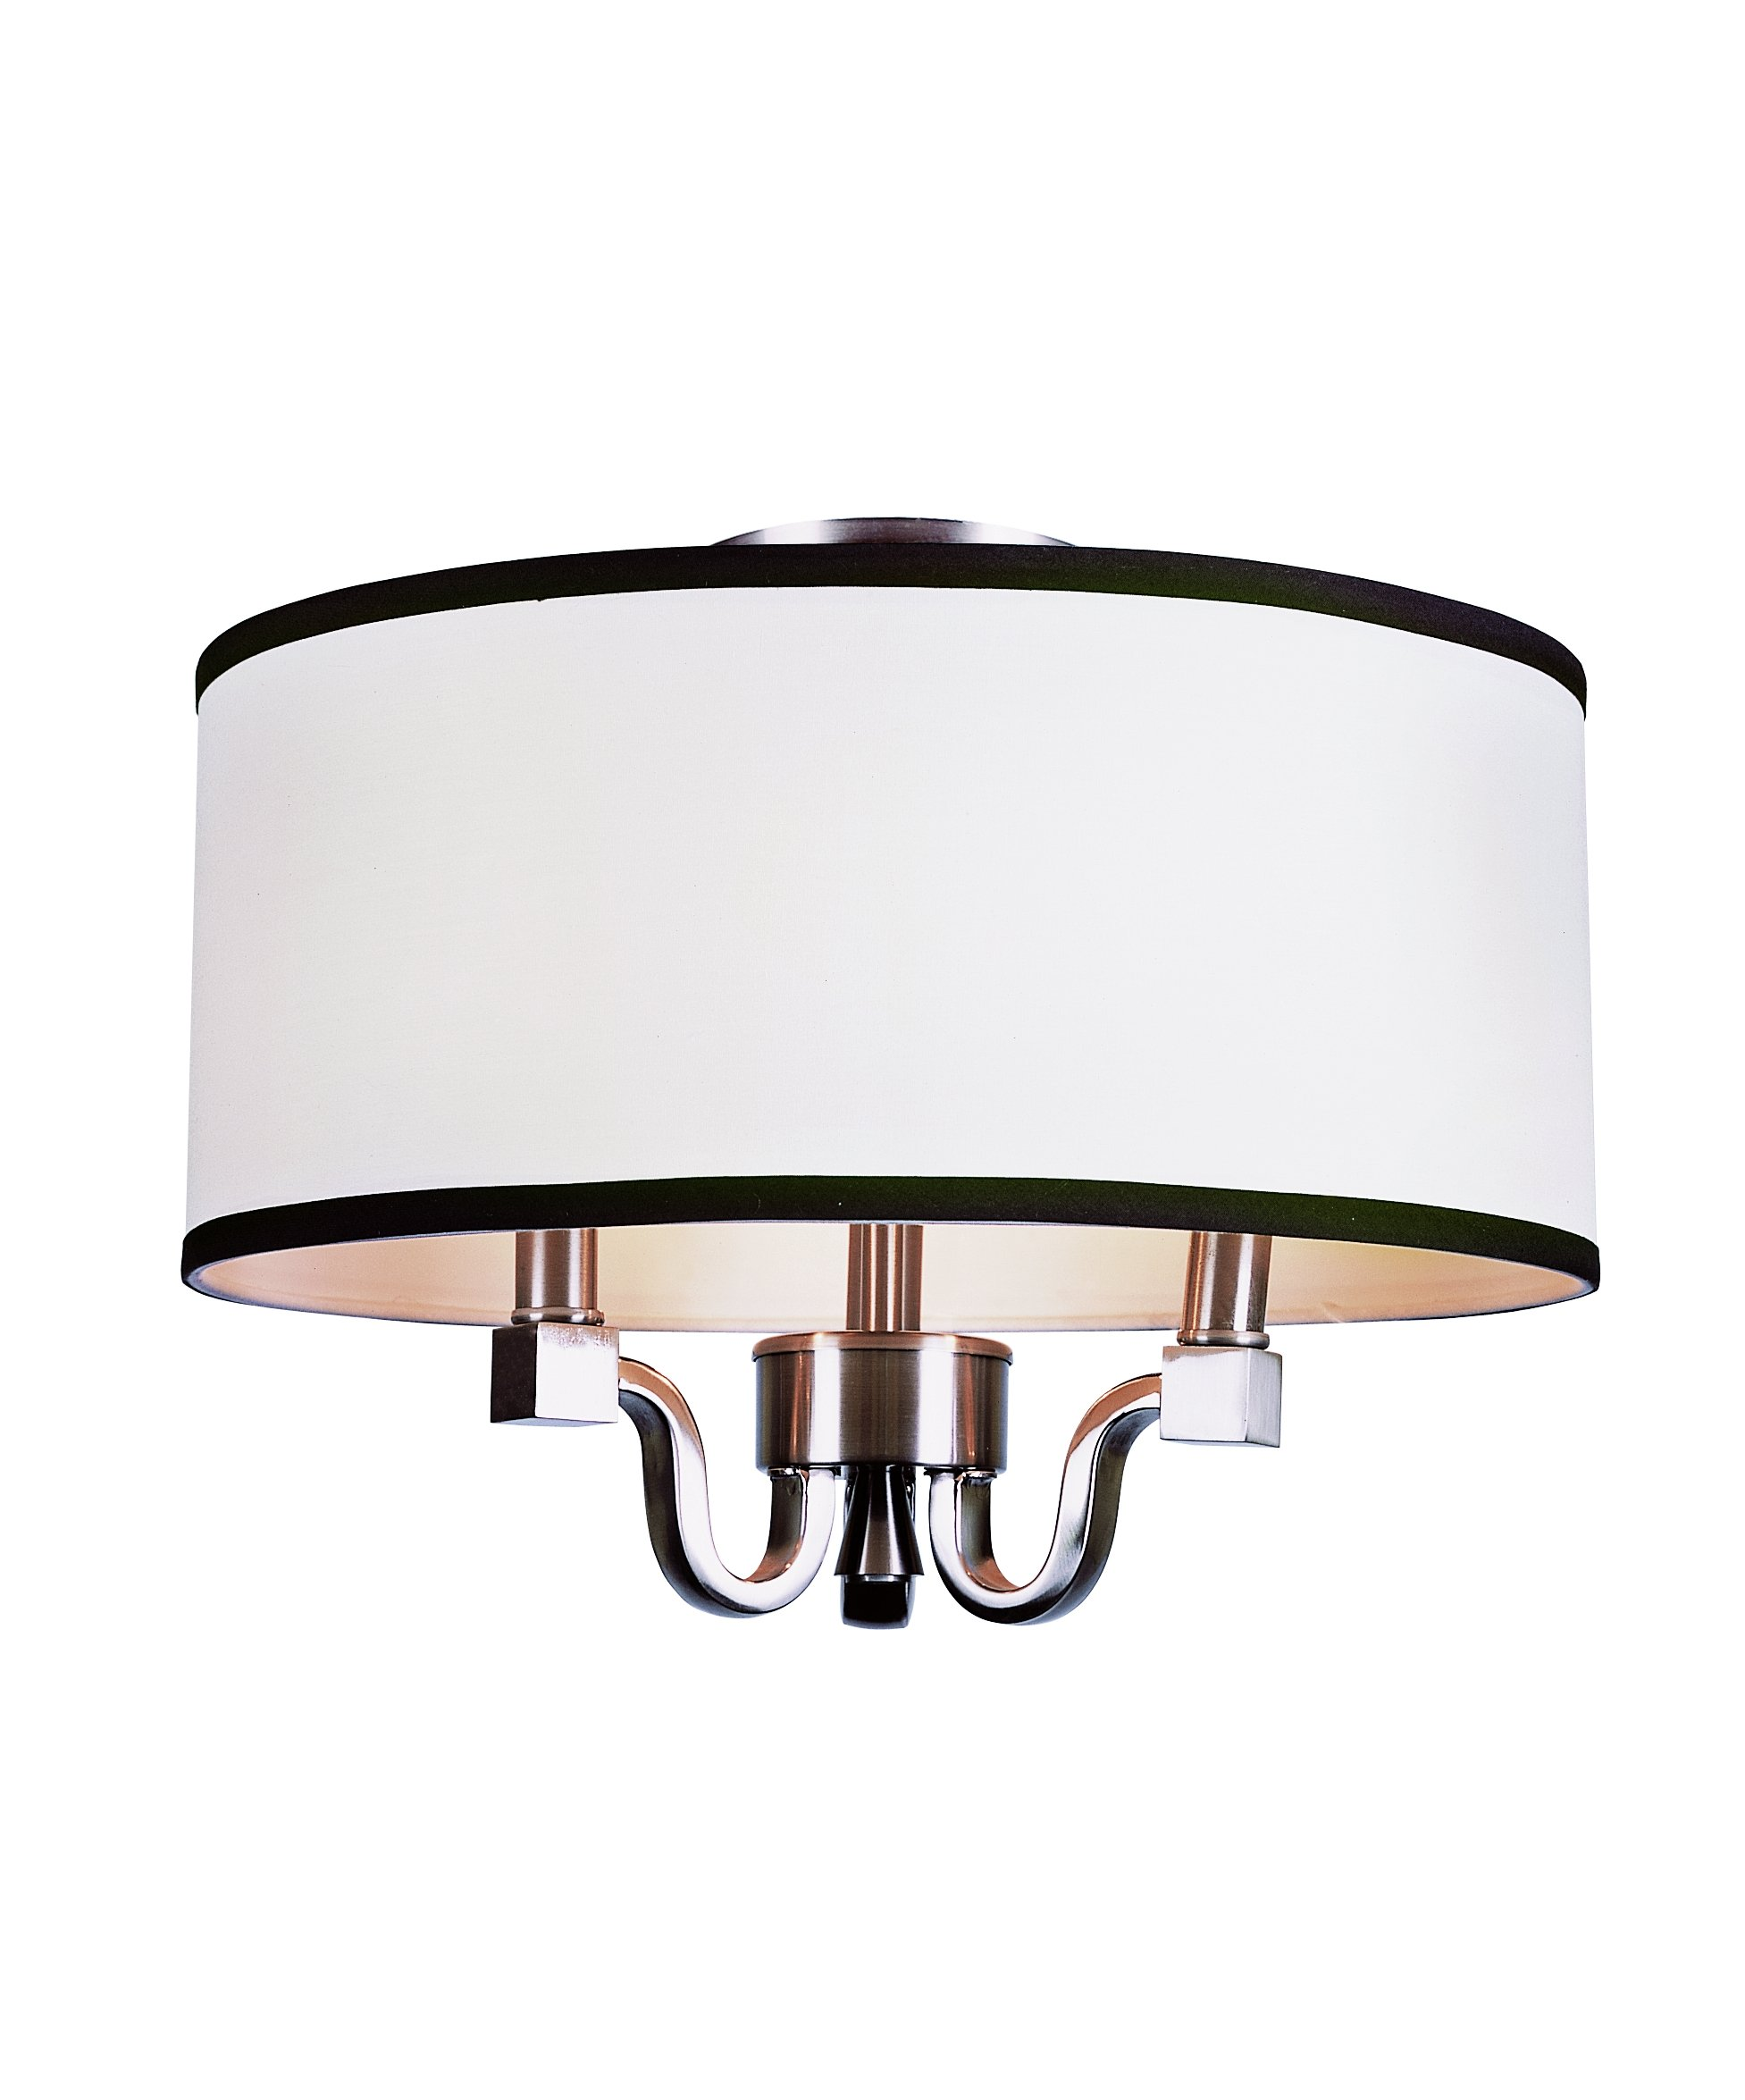 Bel Air Lighting Trans Globe Imports 7970 BN Transitional Three Light Semi Flush Mount from Montclair Collection in Pwt, Nckl, B/S, Slvr. Finish, 15.00 inches, Brushed Nickel